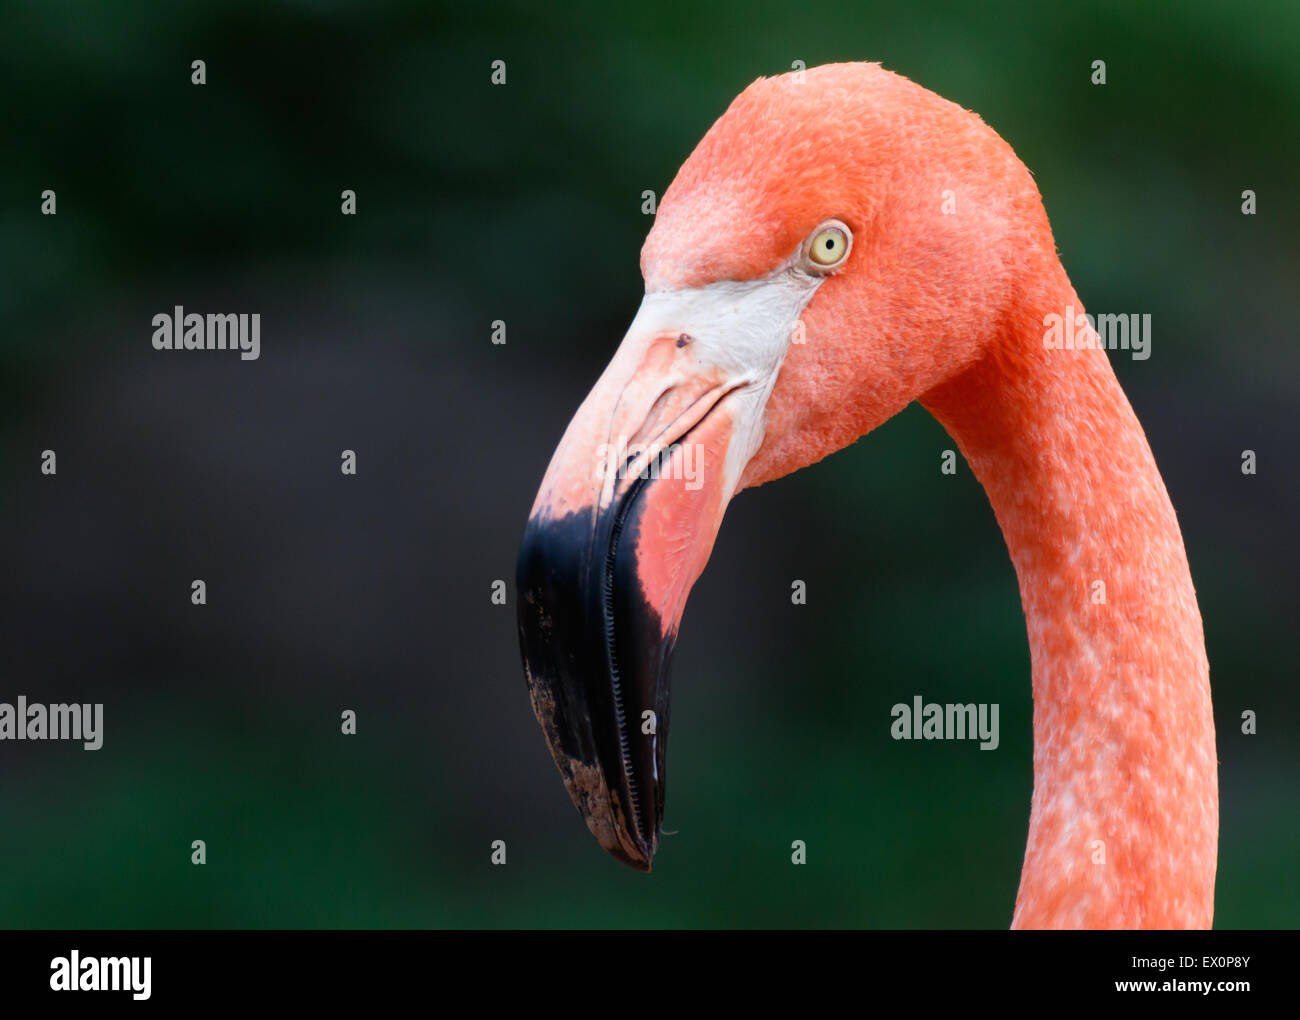 A closeup of a flamingo in a zoo. - Stock Image